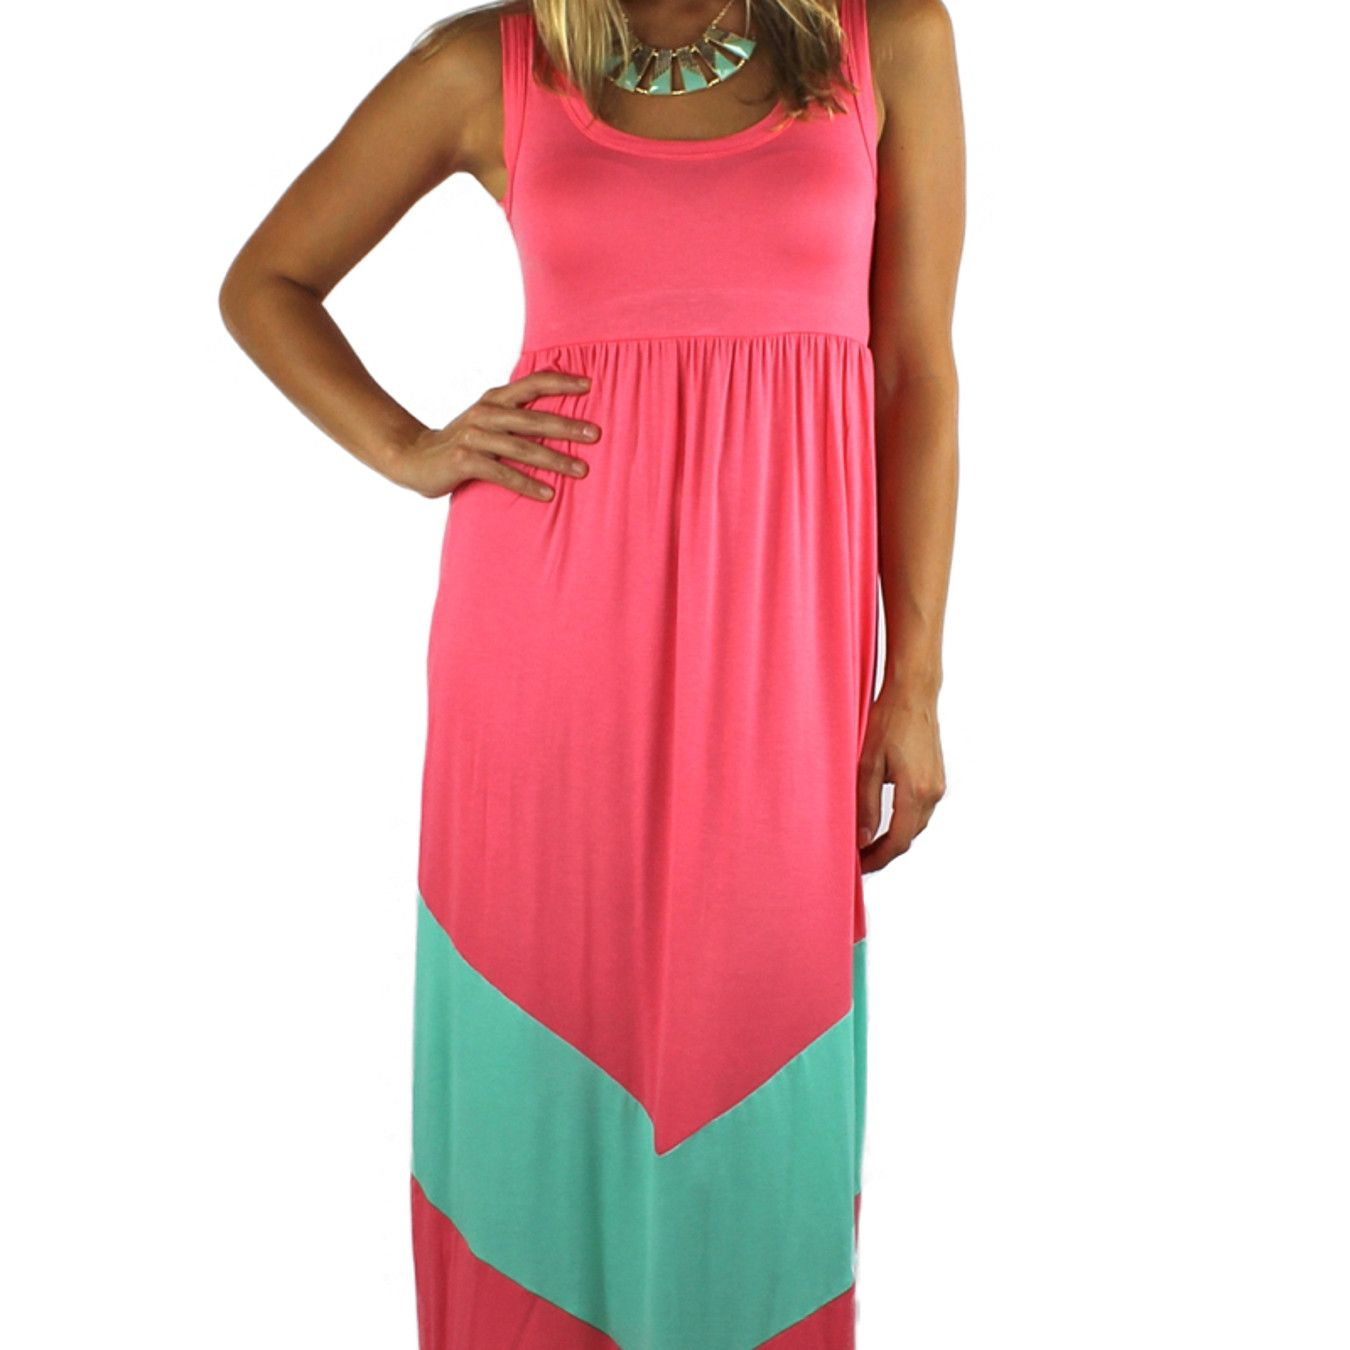 Sleeveless Chevron Maxi Dress - Pink/Mint by H.C.B.